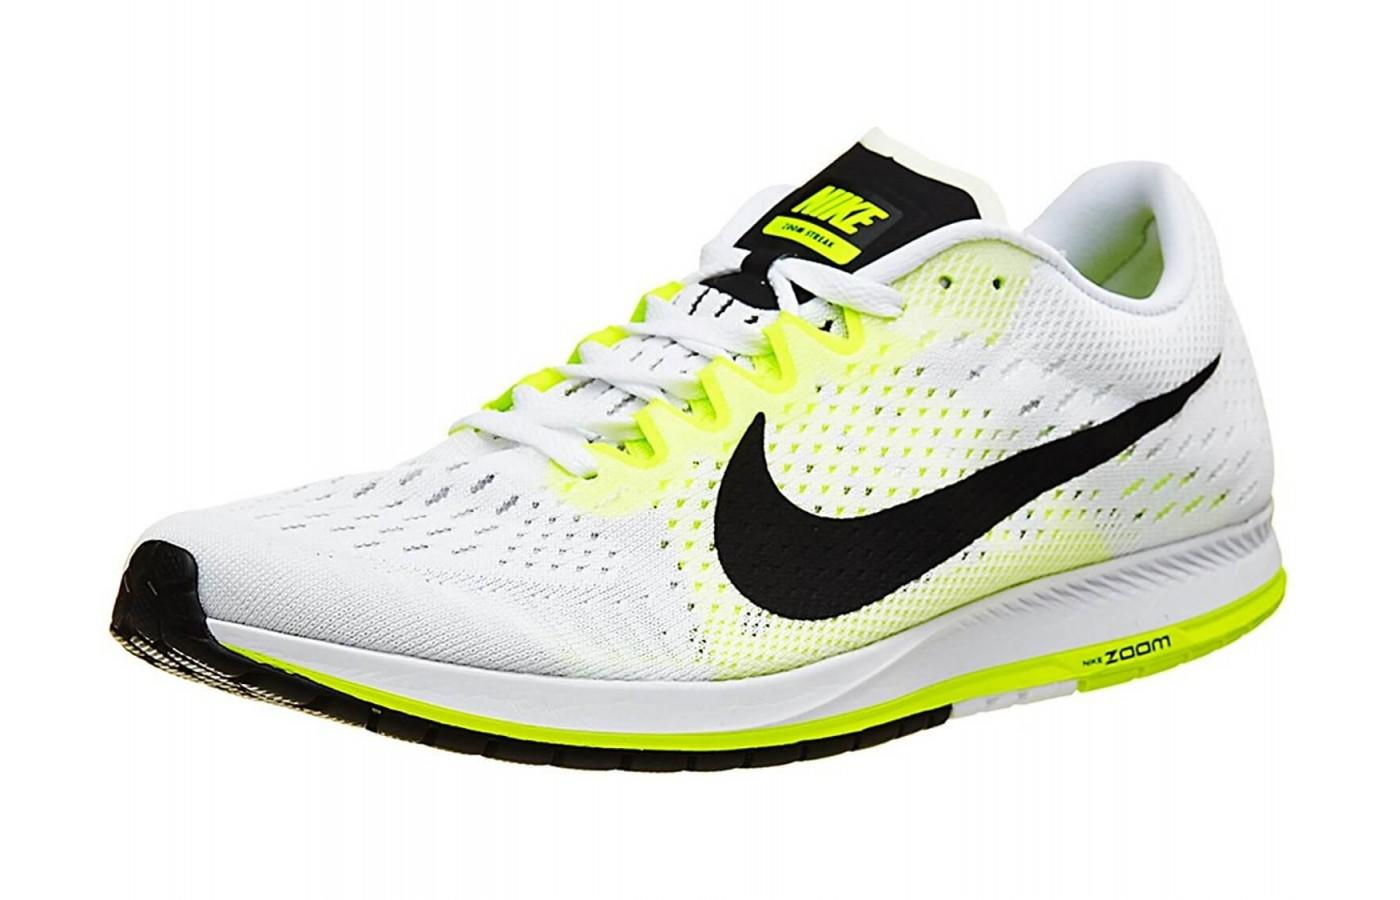 70638211c3bcc Nike Air Zoom Streak 6 Review - Buy or Not in May 2019